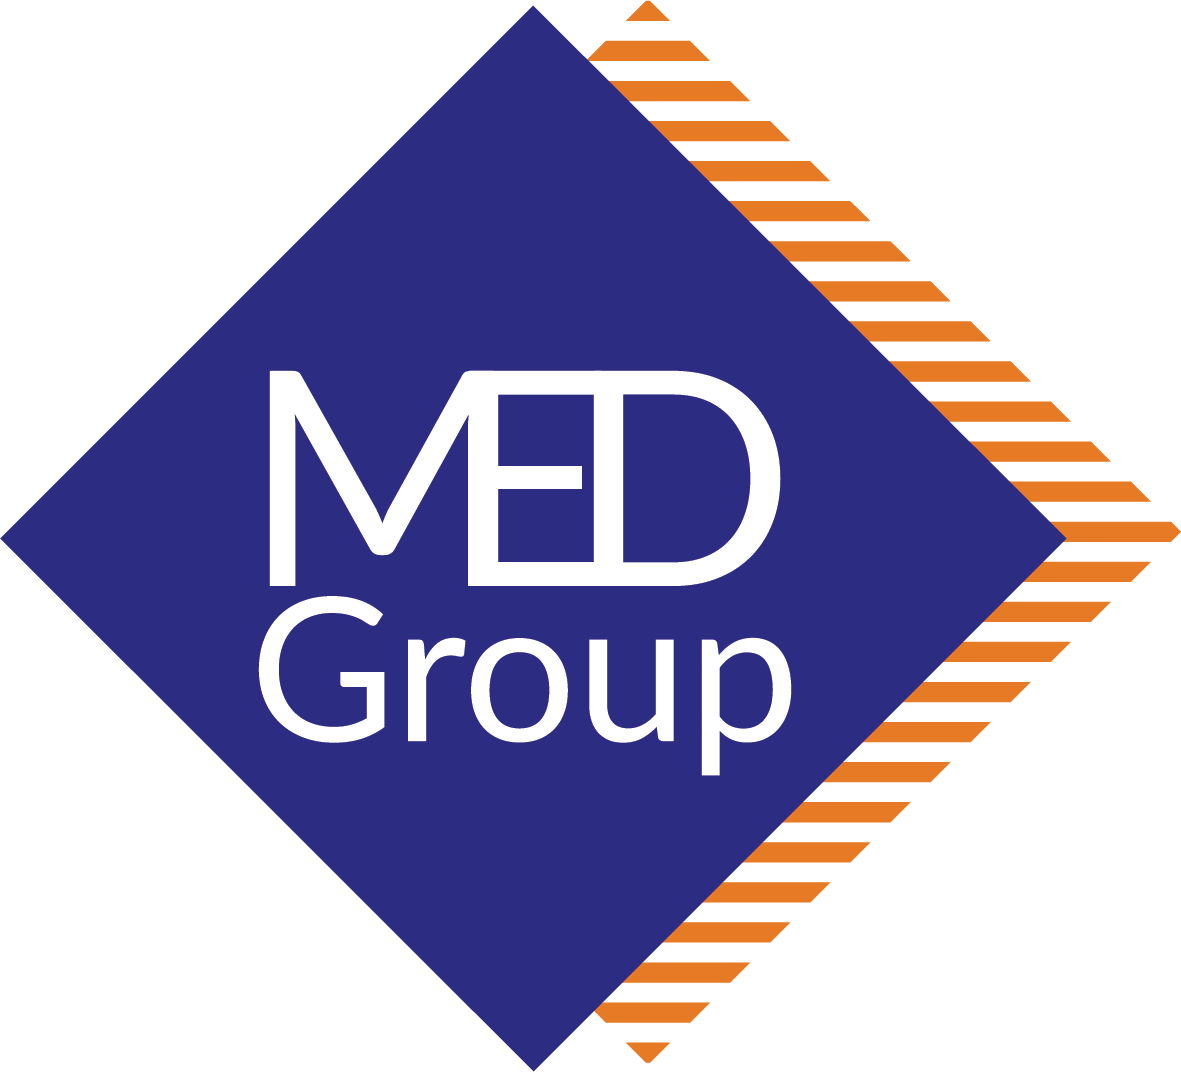 MED GROUP